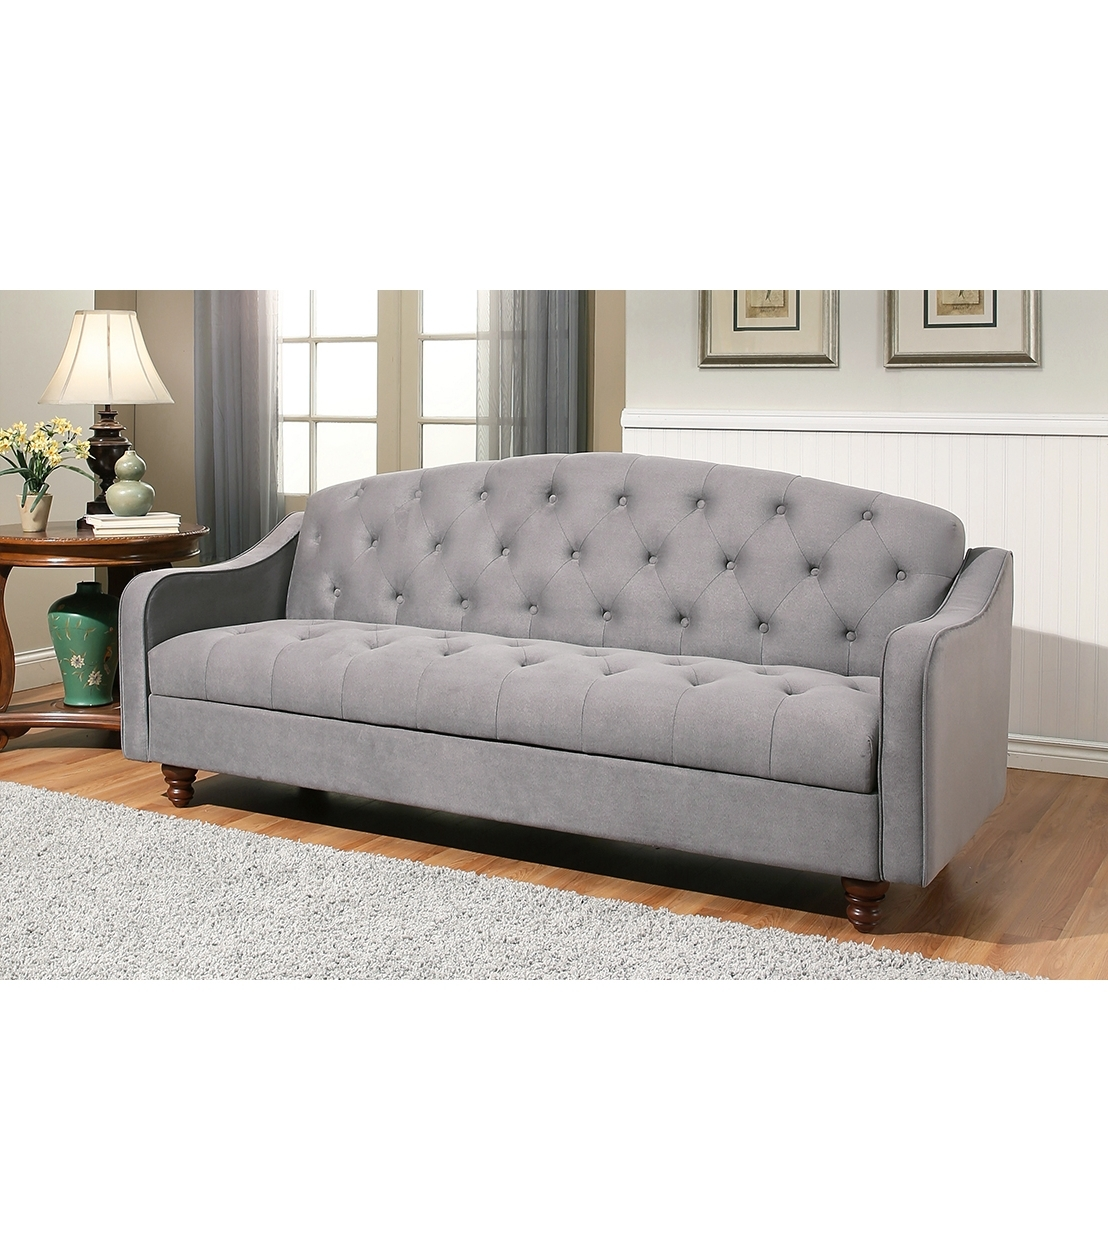 Kijiji Mississauga Sectional Sofas Regarding Well Known Furniture : Quirky Chesterfield Sofa Kijiji Sofa Set Mississauga (View 7 of 20)